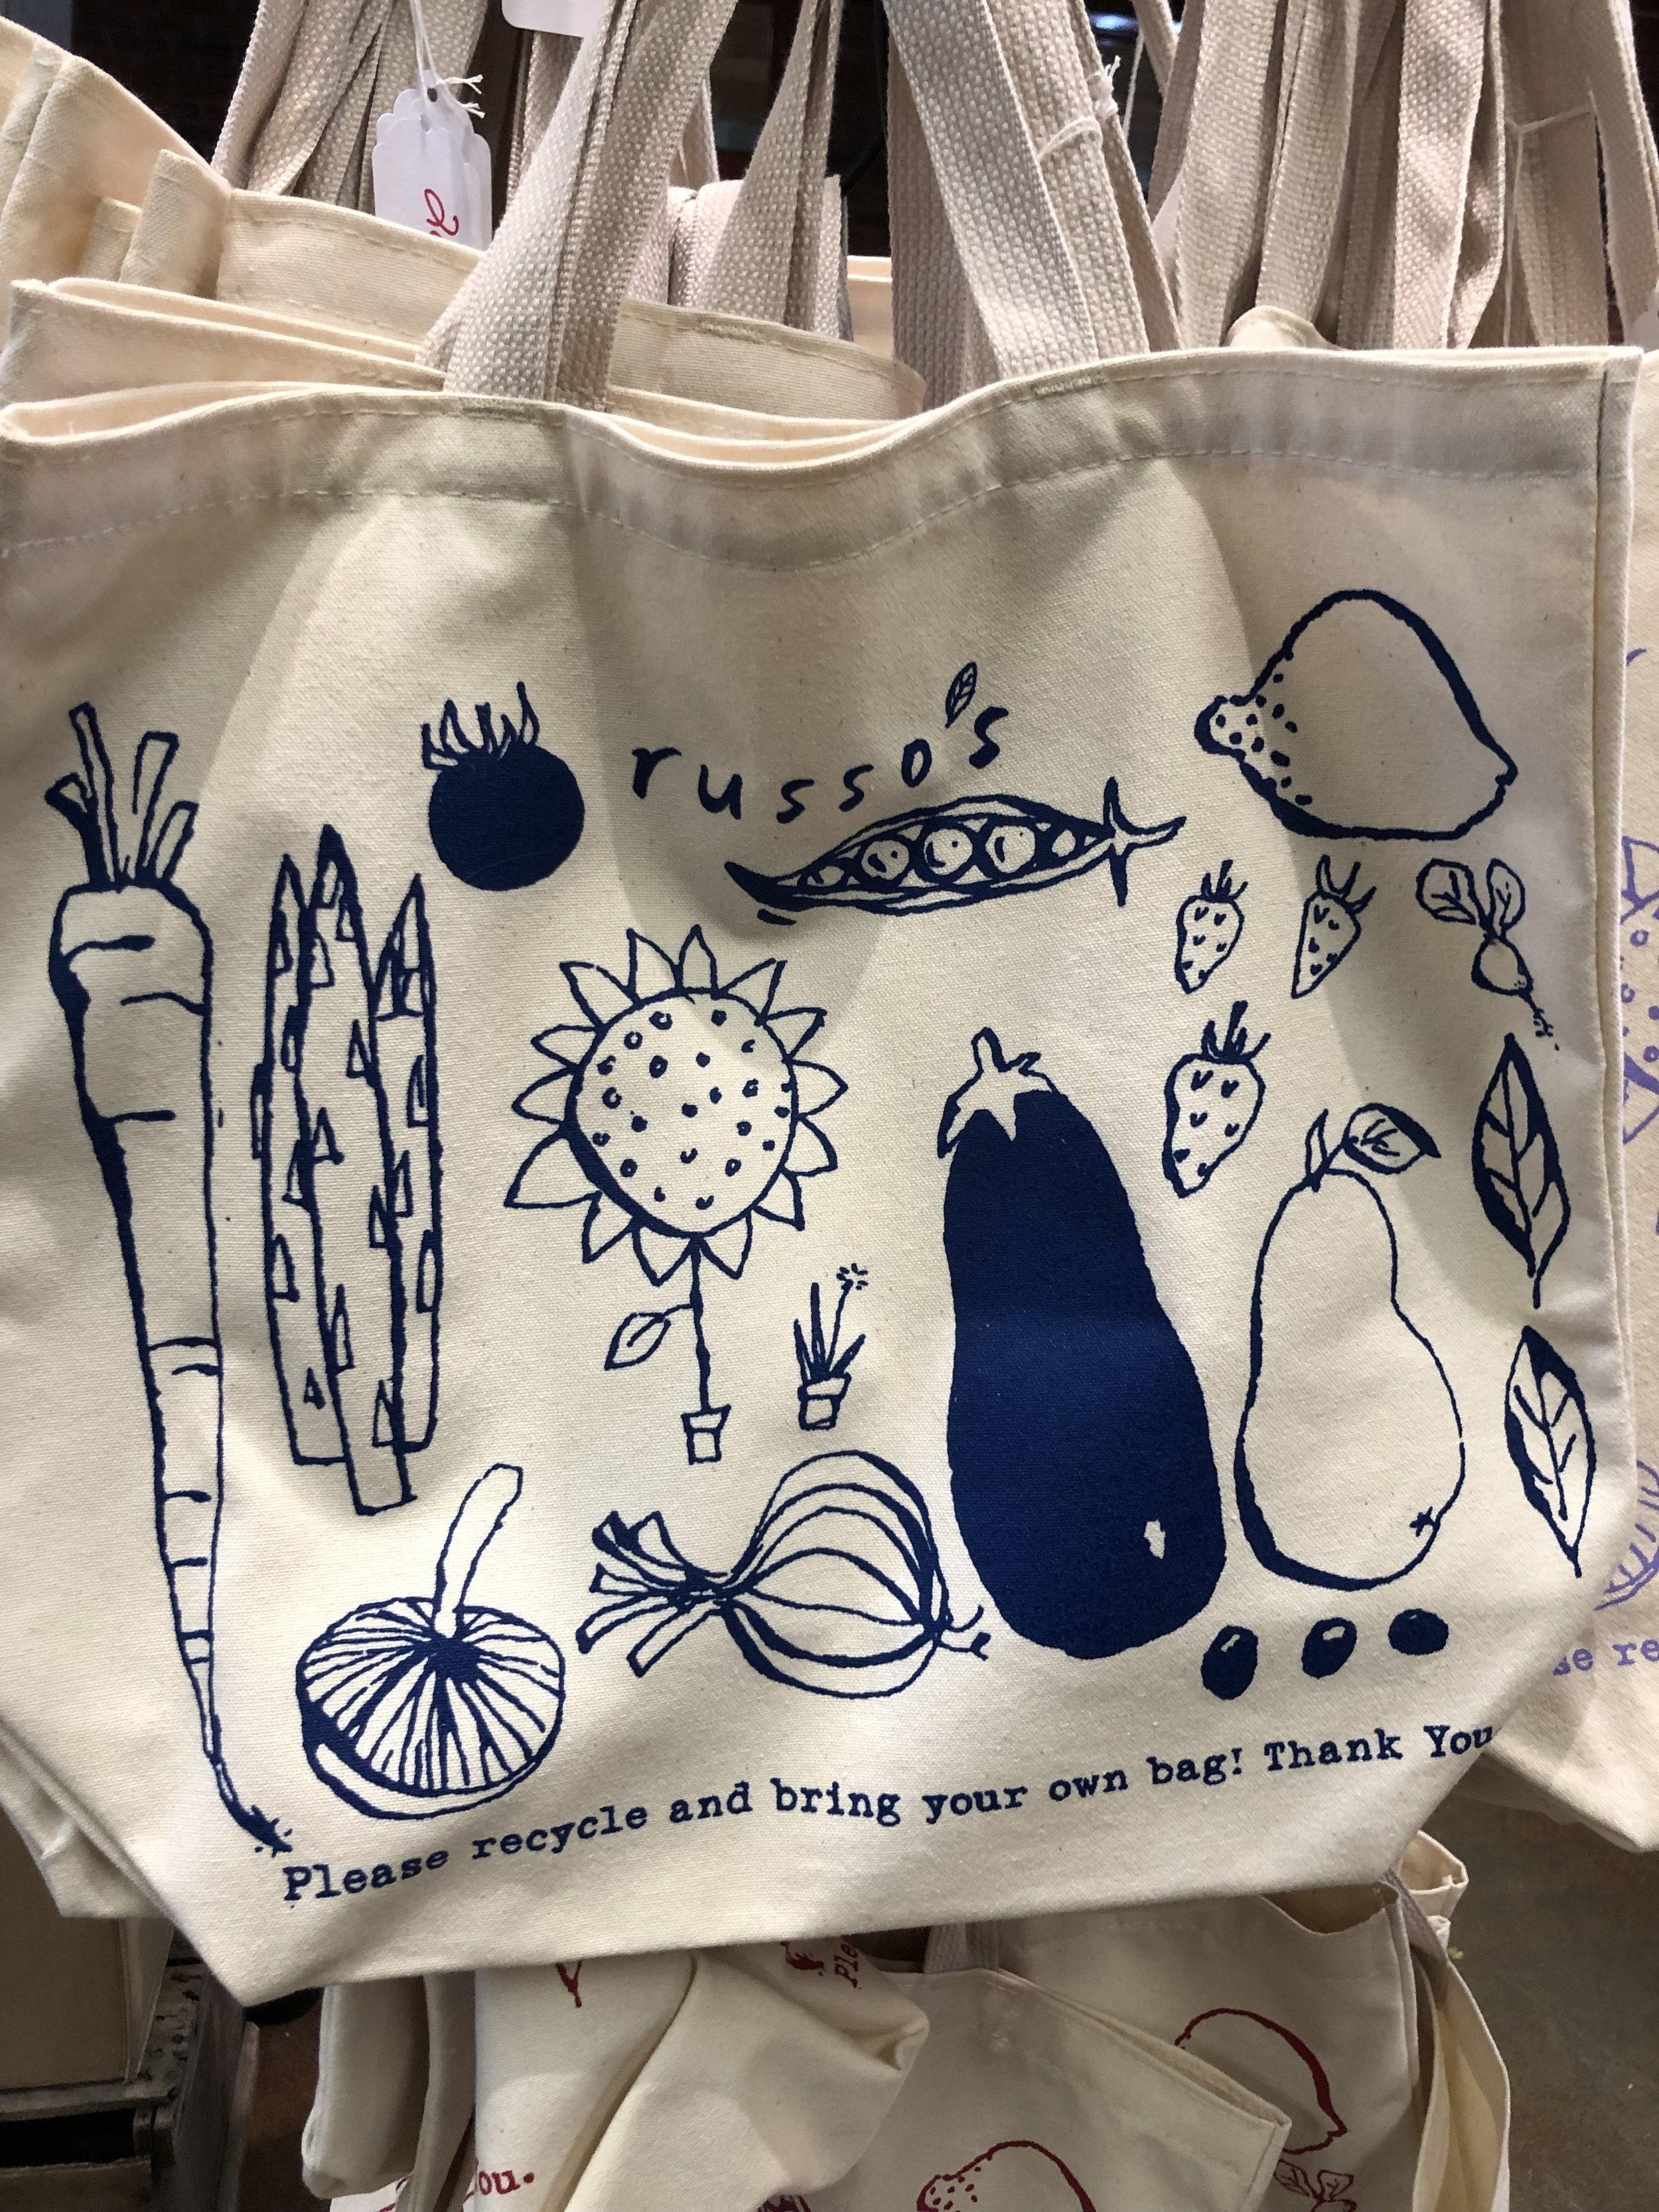 Our newest blue Russo's Tote Bag make a perfect holiday gift!